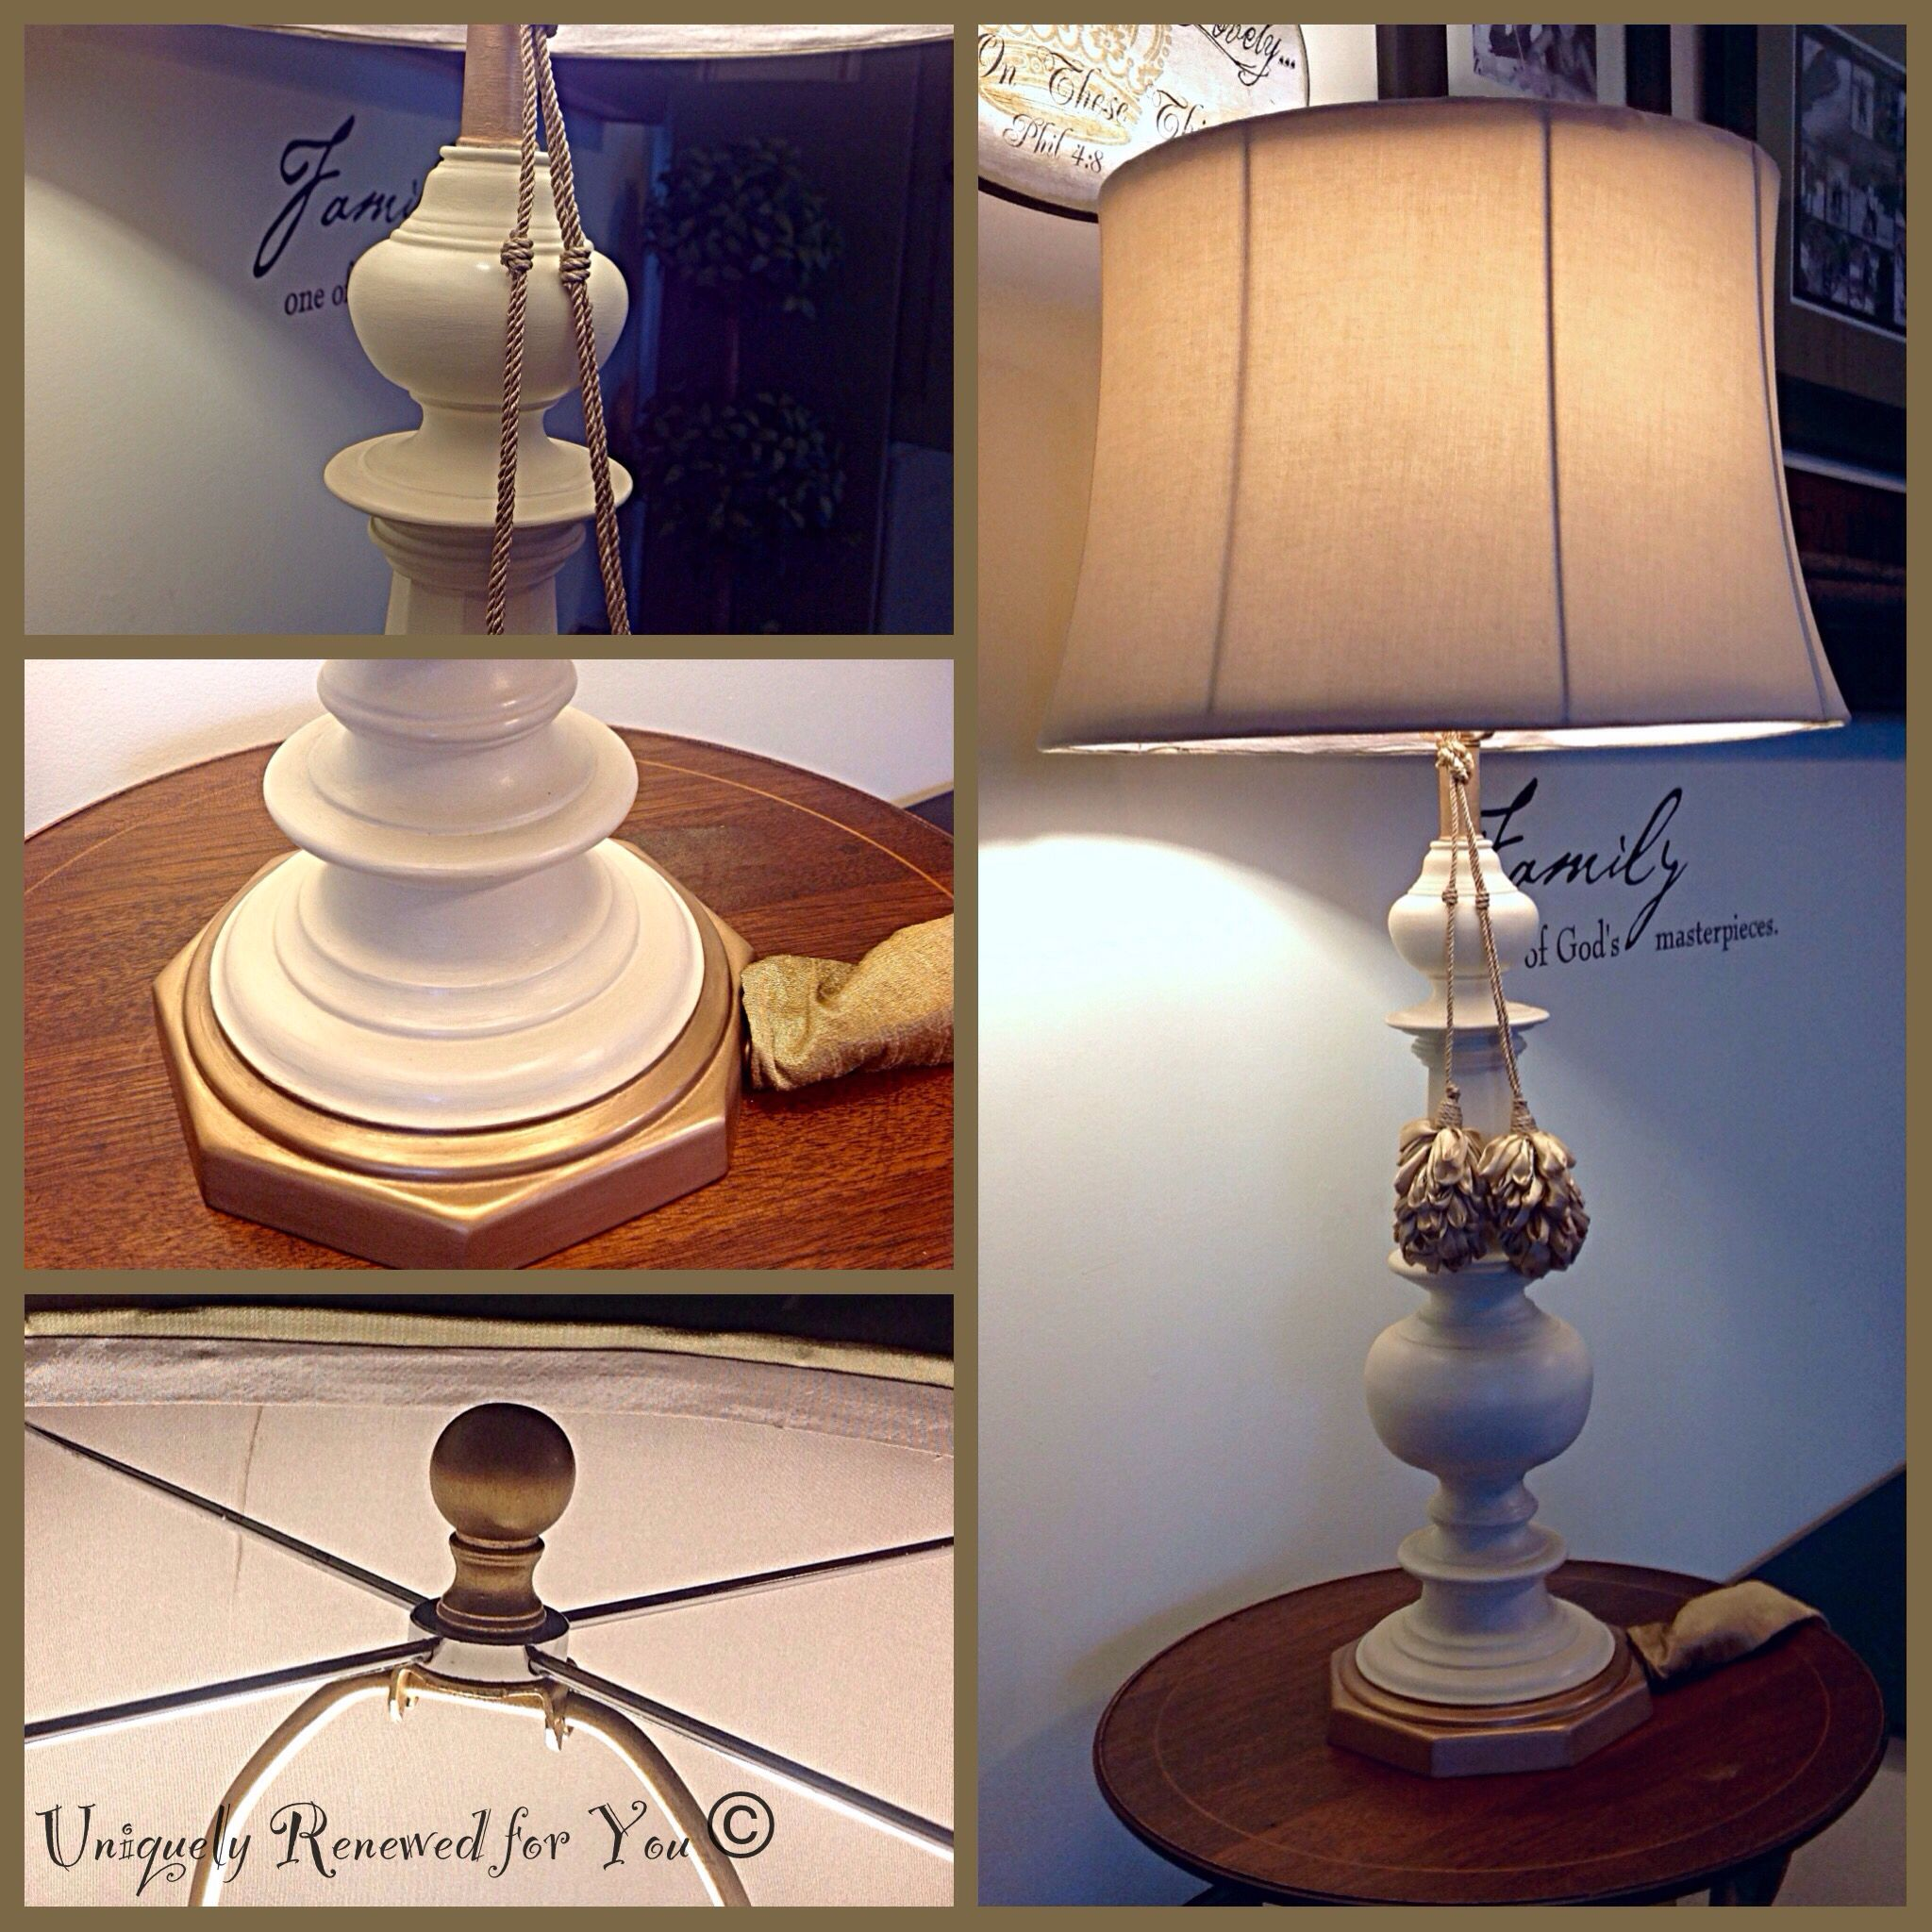 Vintage Stiffel Brass Lamp Updated With Annie Sloan Chalk Paint 50 50 Pure White Old White Aged Gold Leaf Brass Lamp Lamp Vintage Furniture